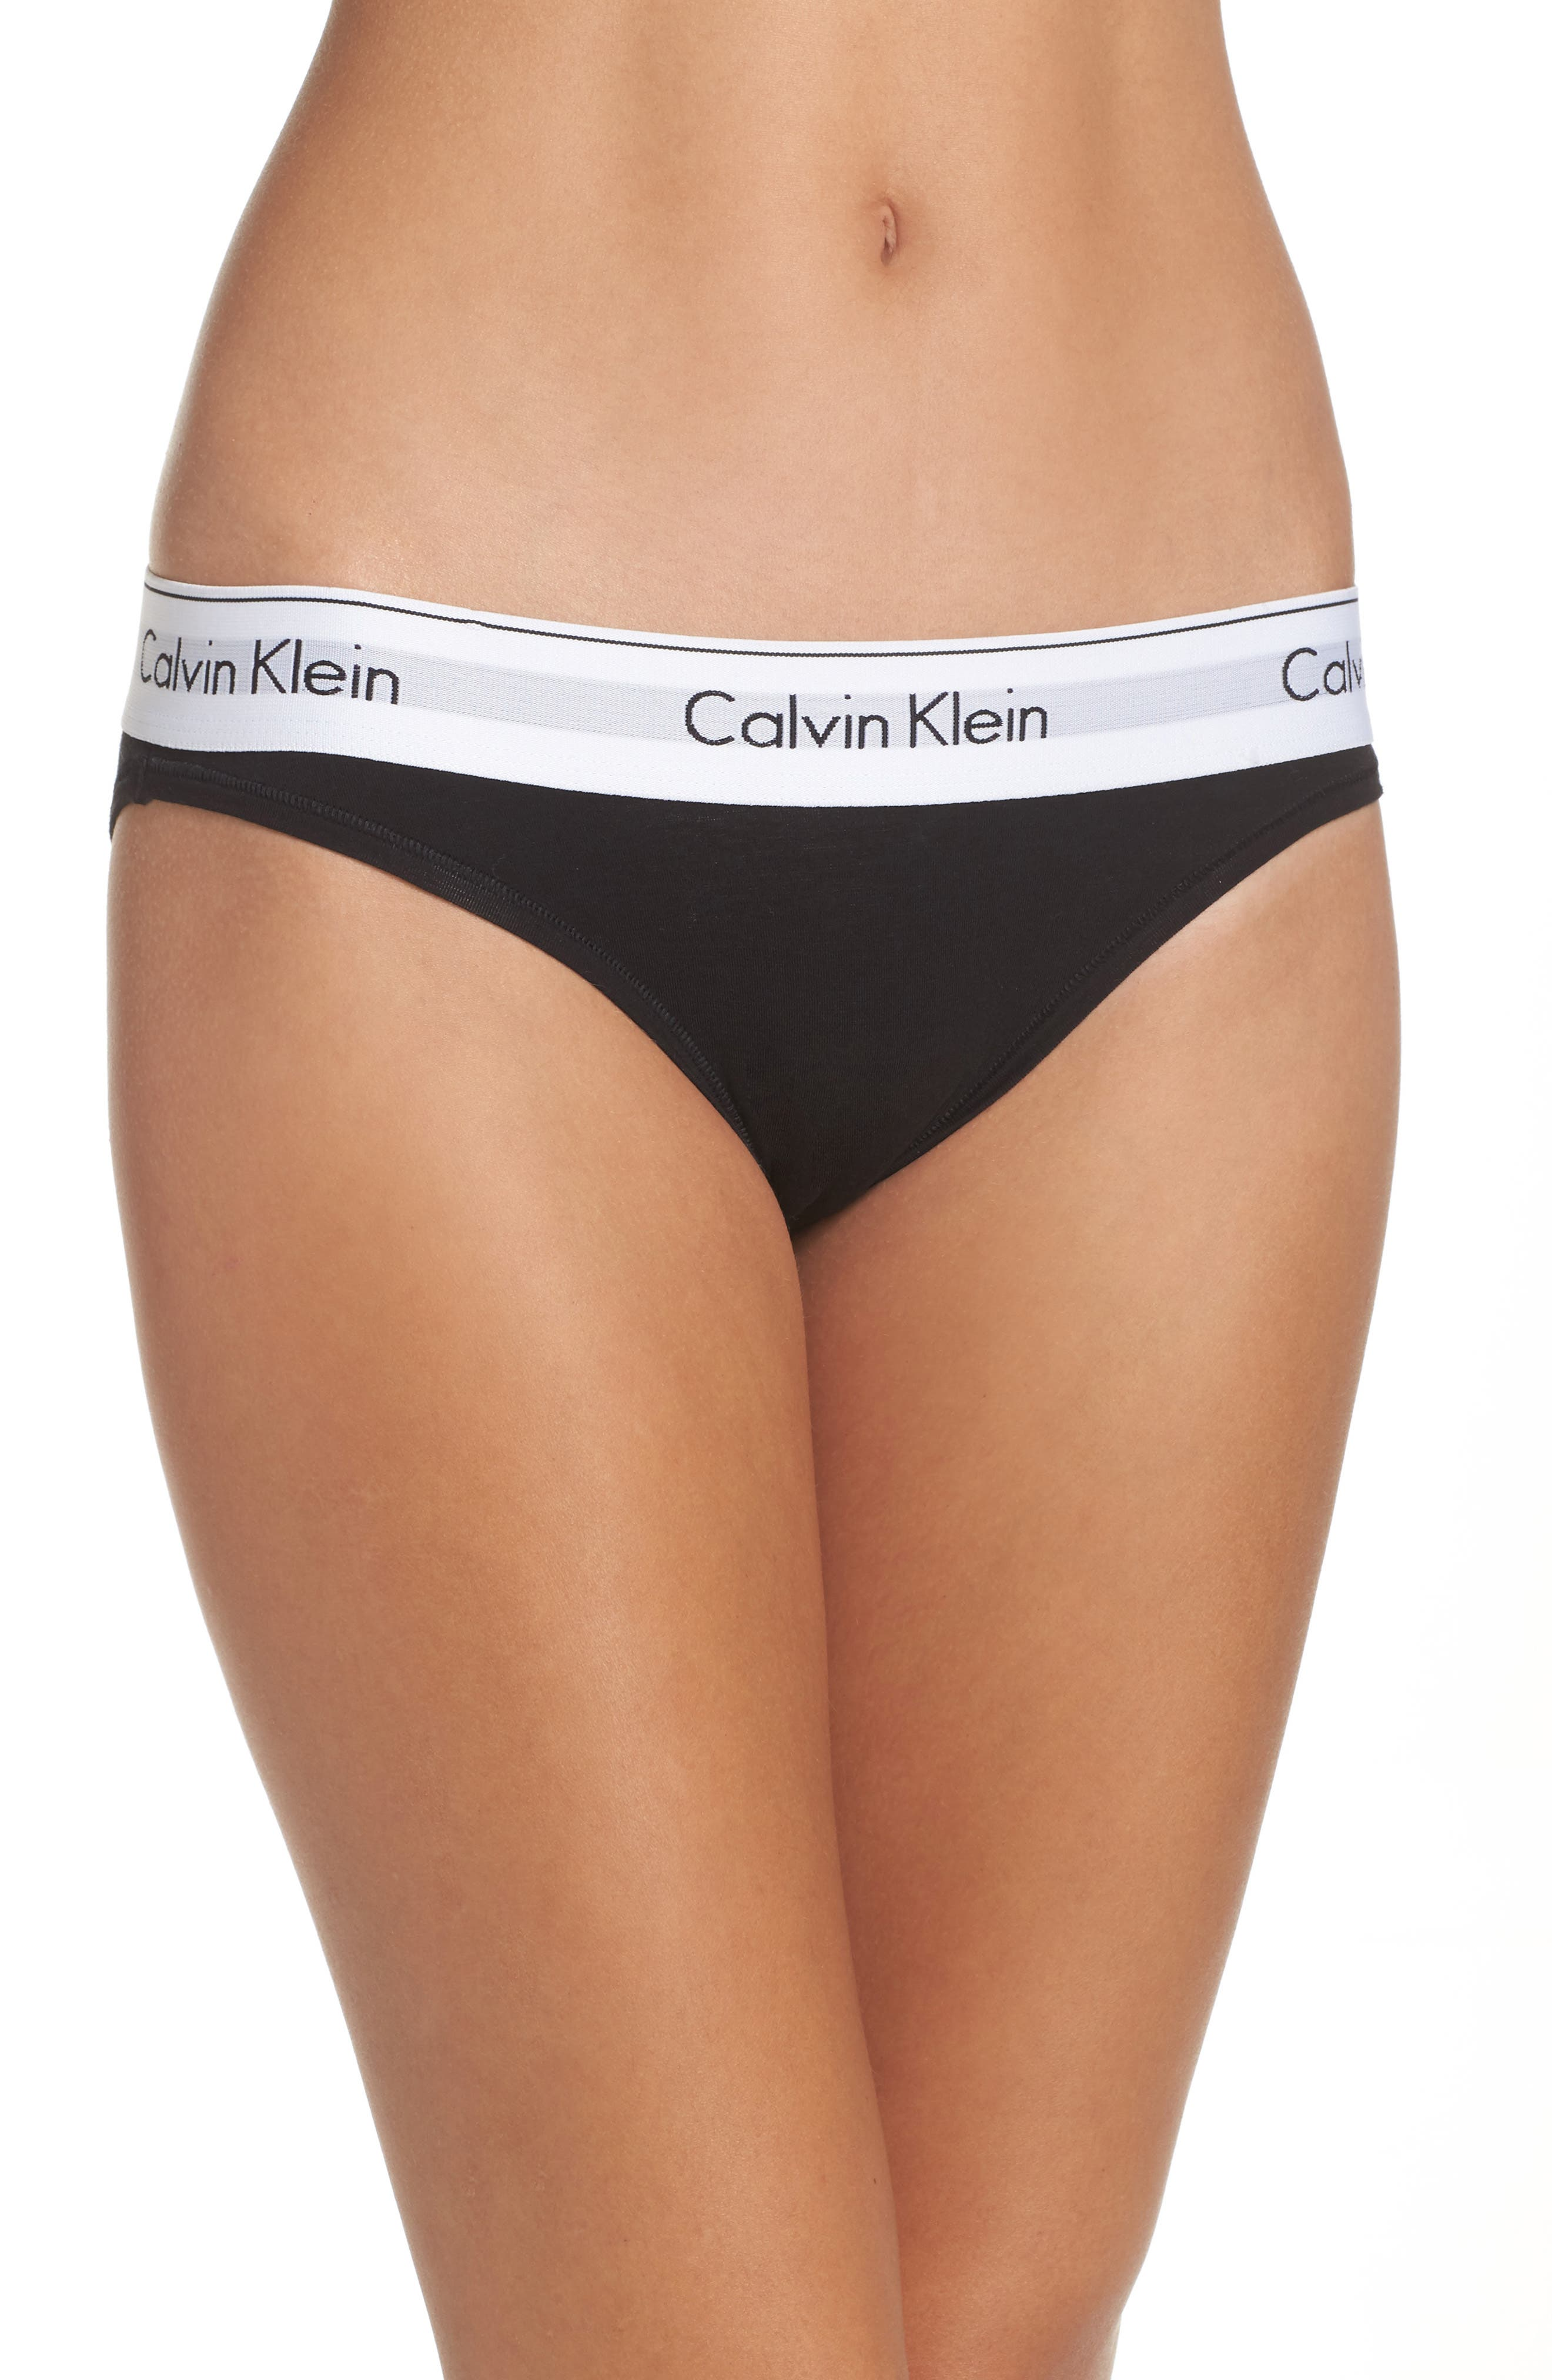 CALVIN KLEIN, 'Modern Cotton Collection' Cotton Blend Bikini, Alternate thumbnail 2, color, BLACK